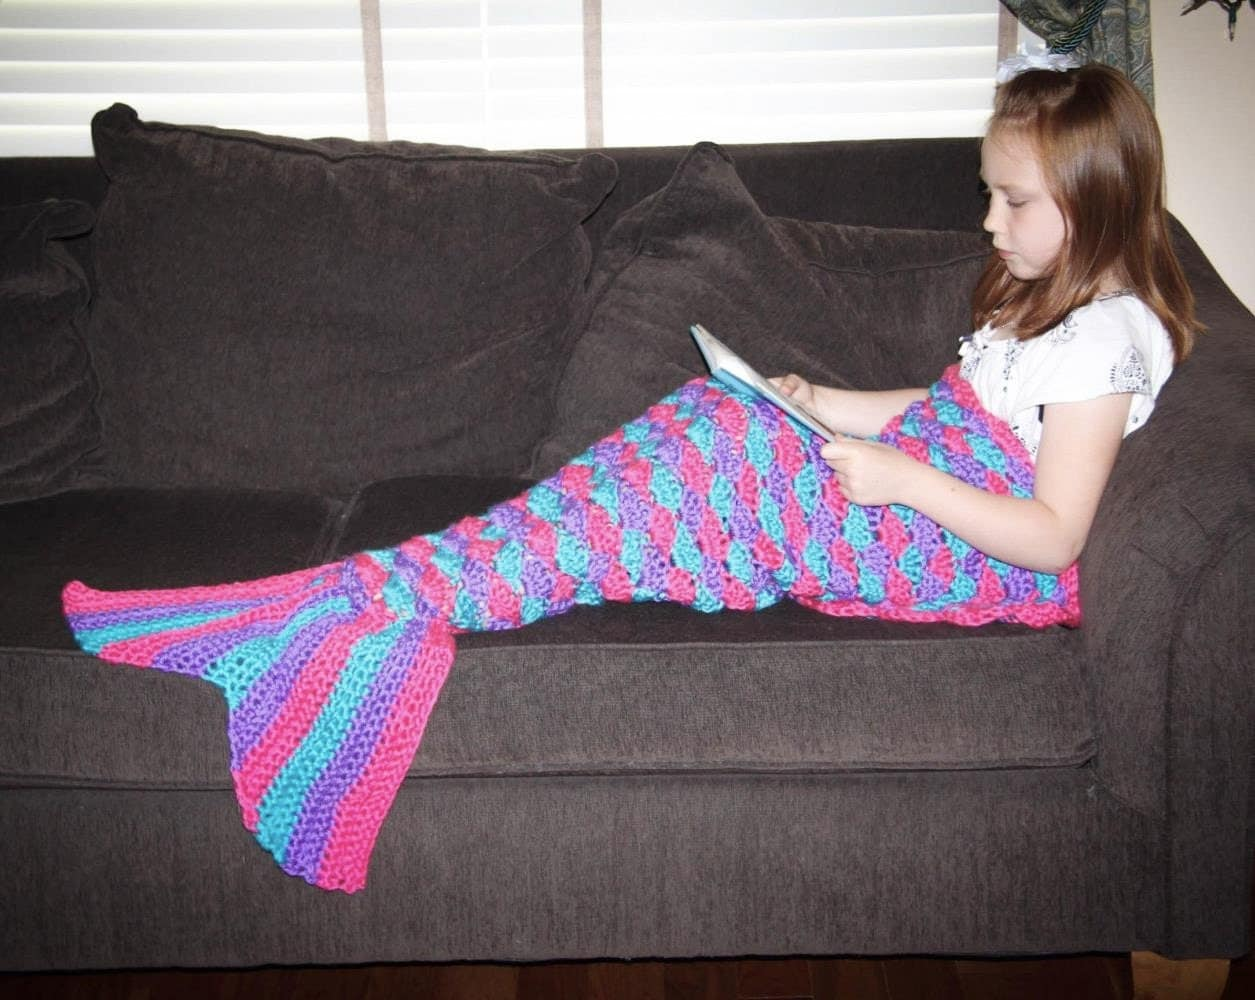 Crochet Patterns Mermaid Tail Blanket : Mermaid Tail Lapghan Blanket Crochet Pattern in ALL by 4aSong